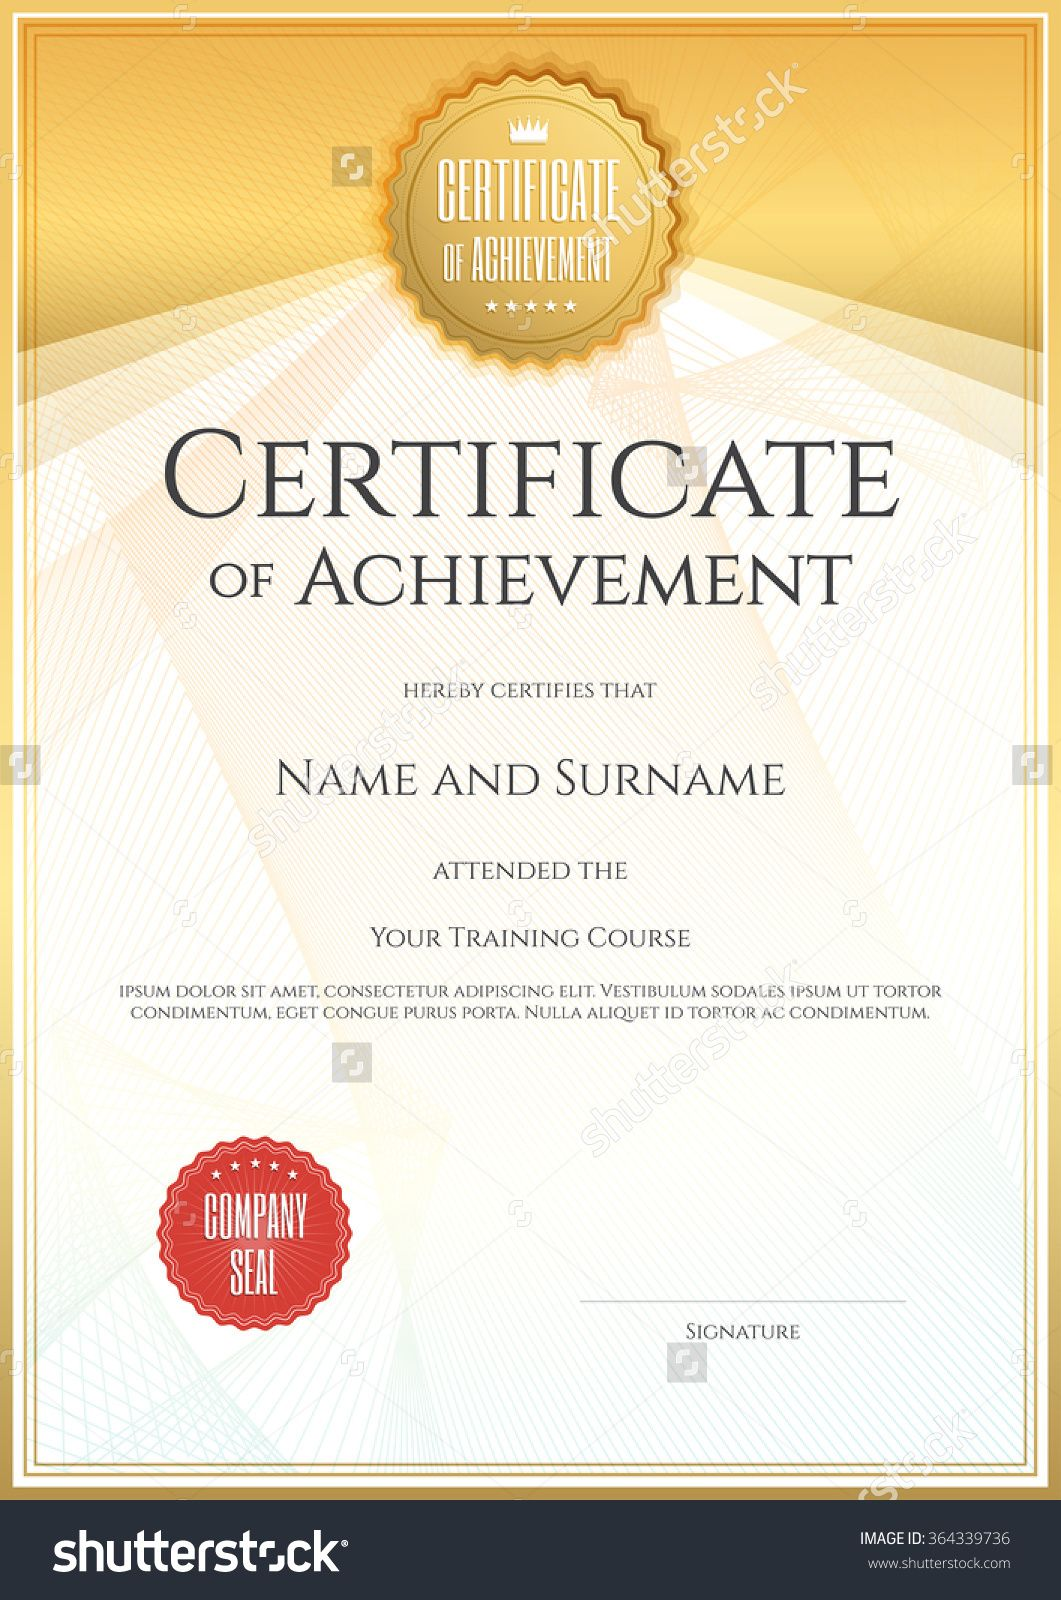 Certificate Design Format Sample Of Company Profile